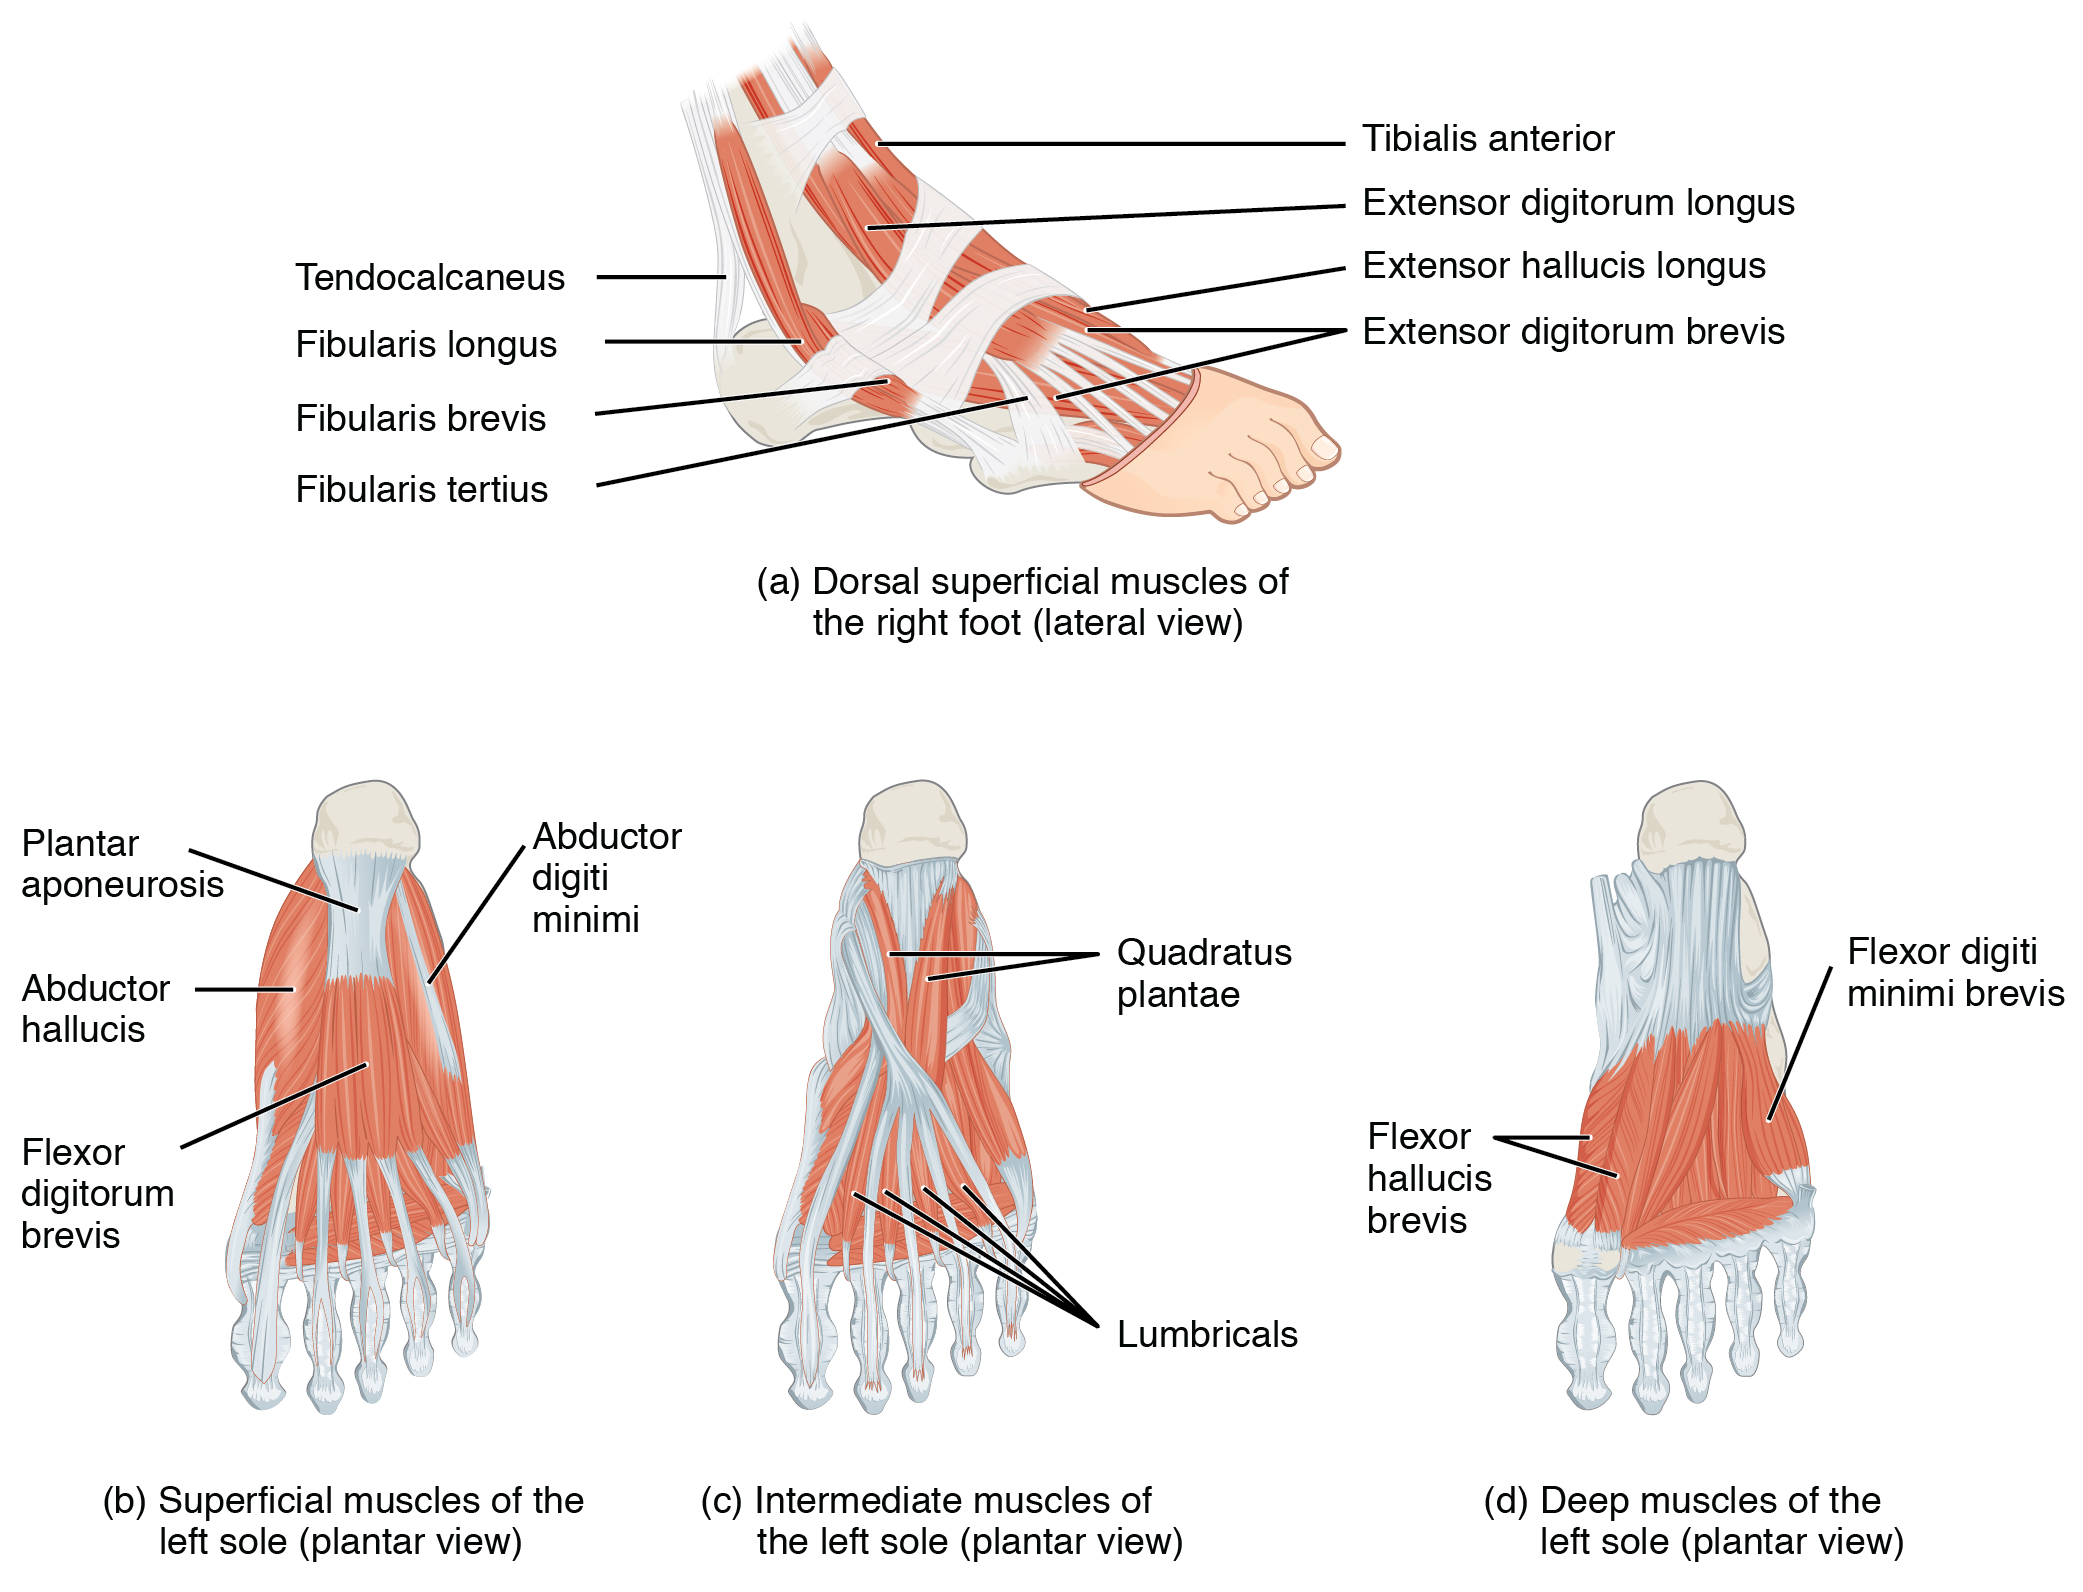 Muscles Of The Lower Leg And Foot Human Anatomy And Physiology Lab Bsb 141